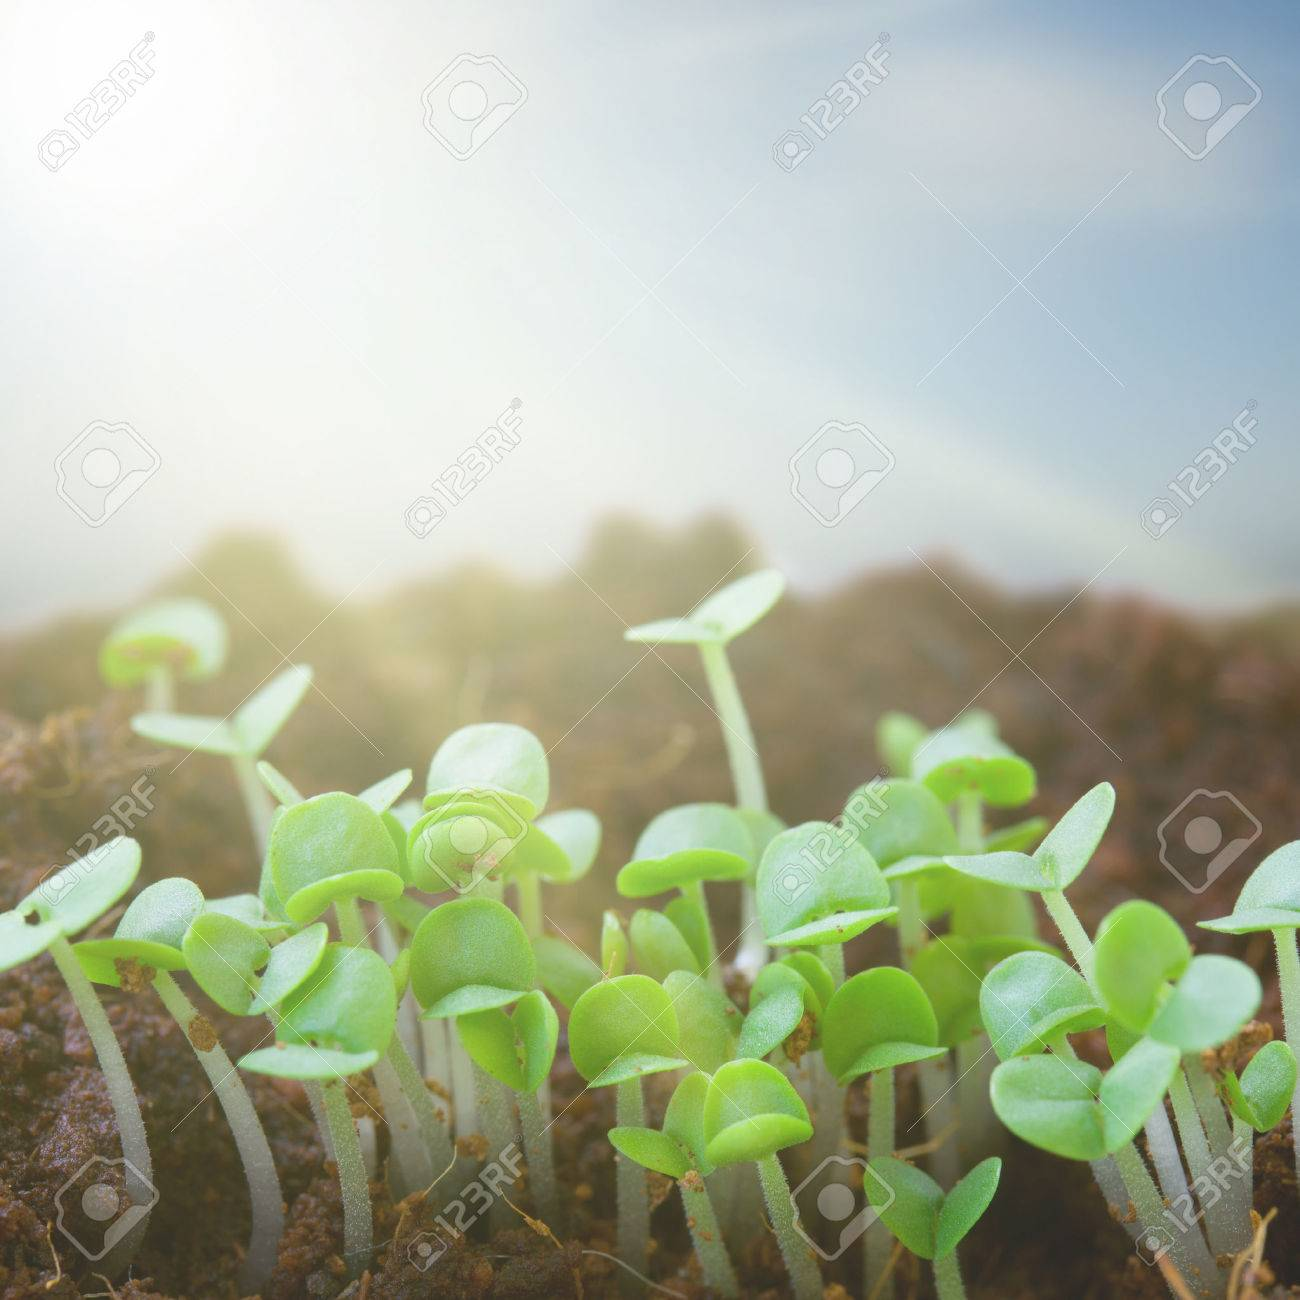 New Beginning Spring Sprouts In Black Soil Under The Sun Stock Photo